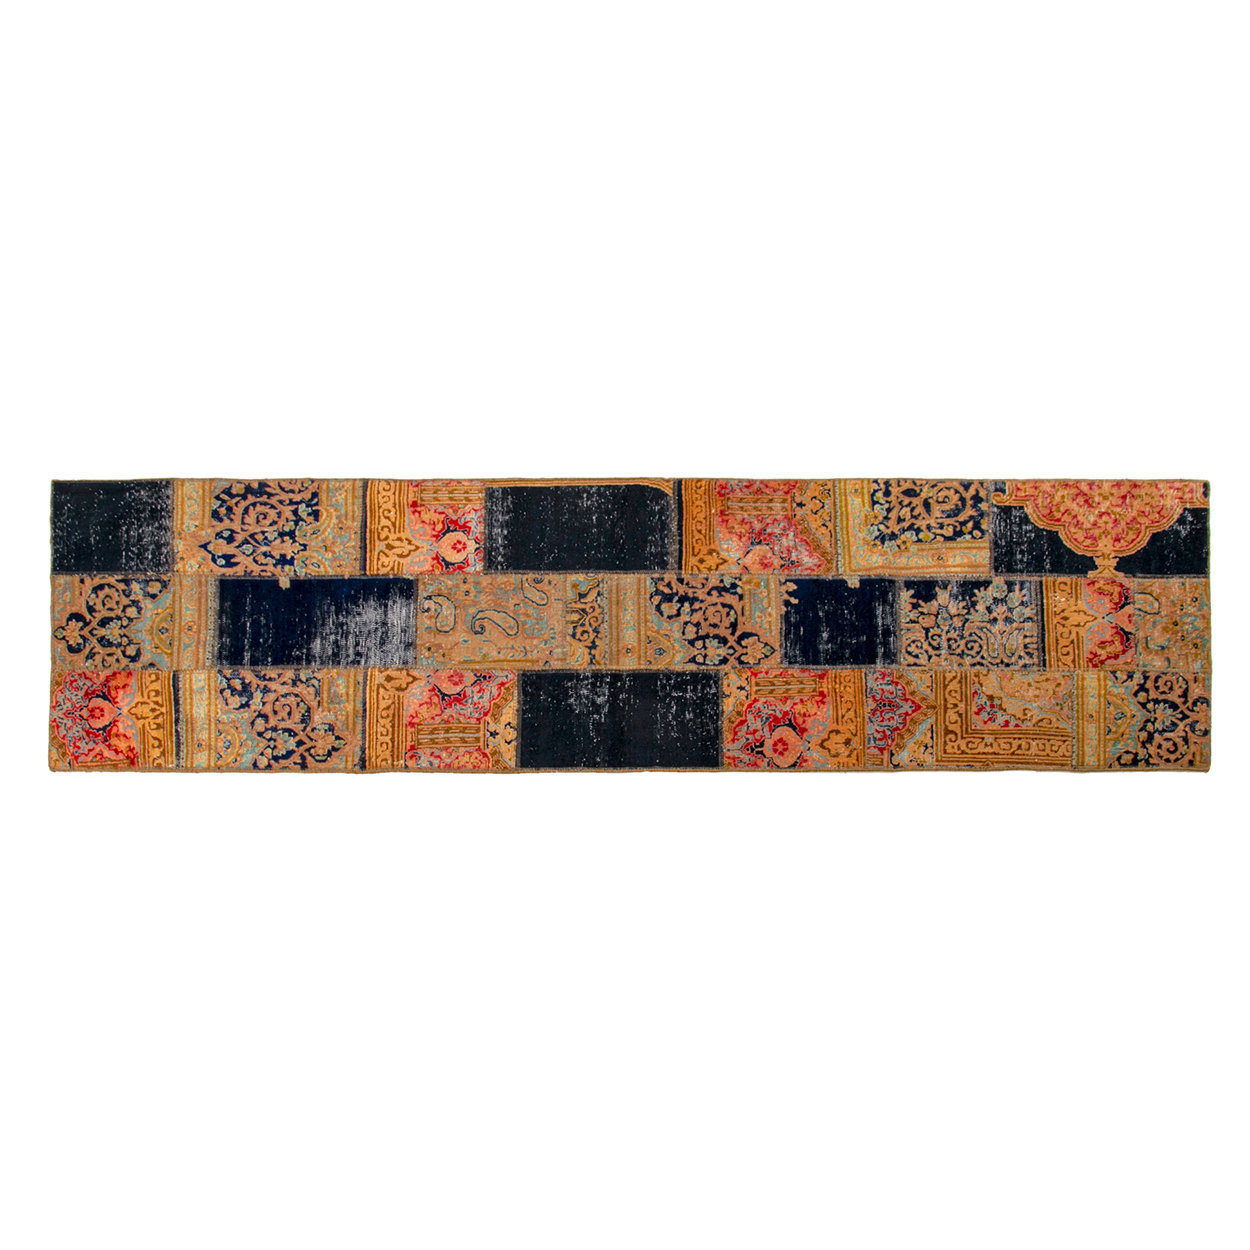 Image of Tappeto Vintage Patchwork 287x80, multicolore